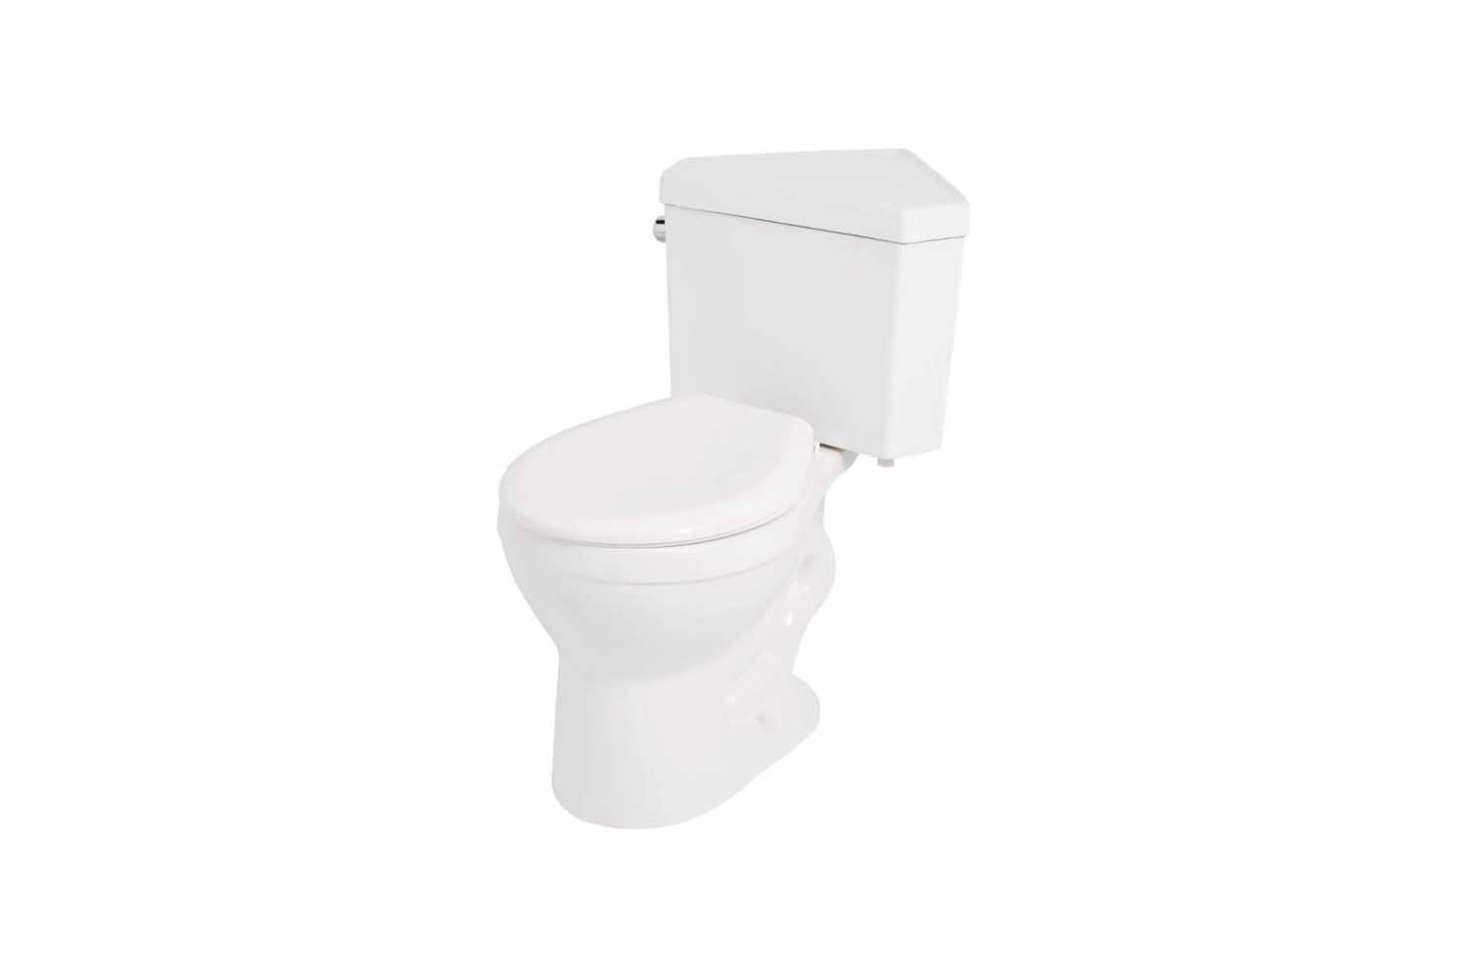 Peachy 10 Easy Pieces Corner Toilets For Compact Bathrooms Beatyapartments Chair Design Images Beatyapartmentscom